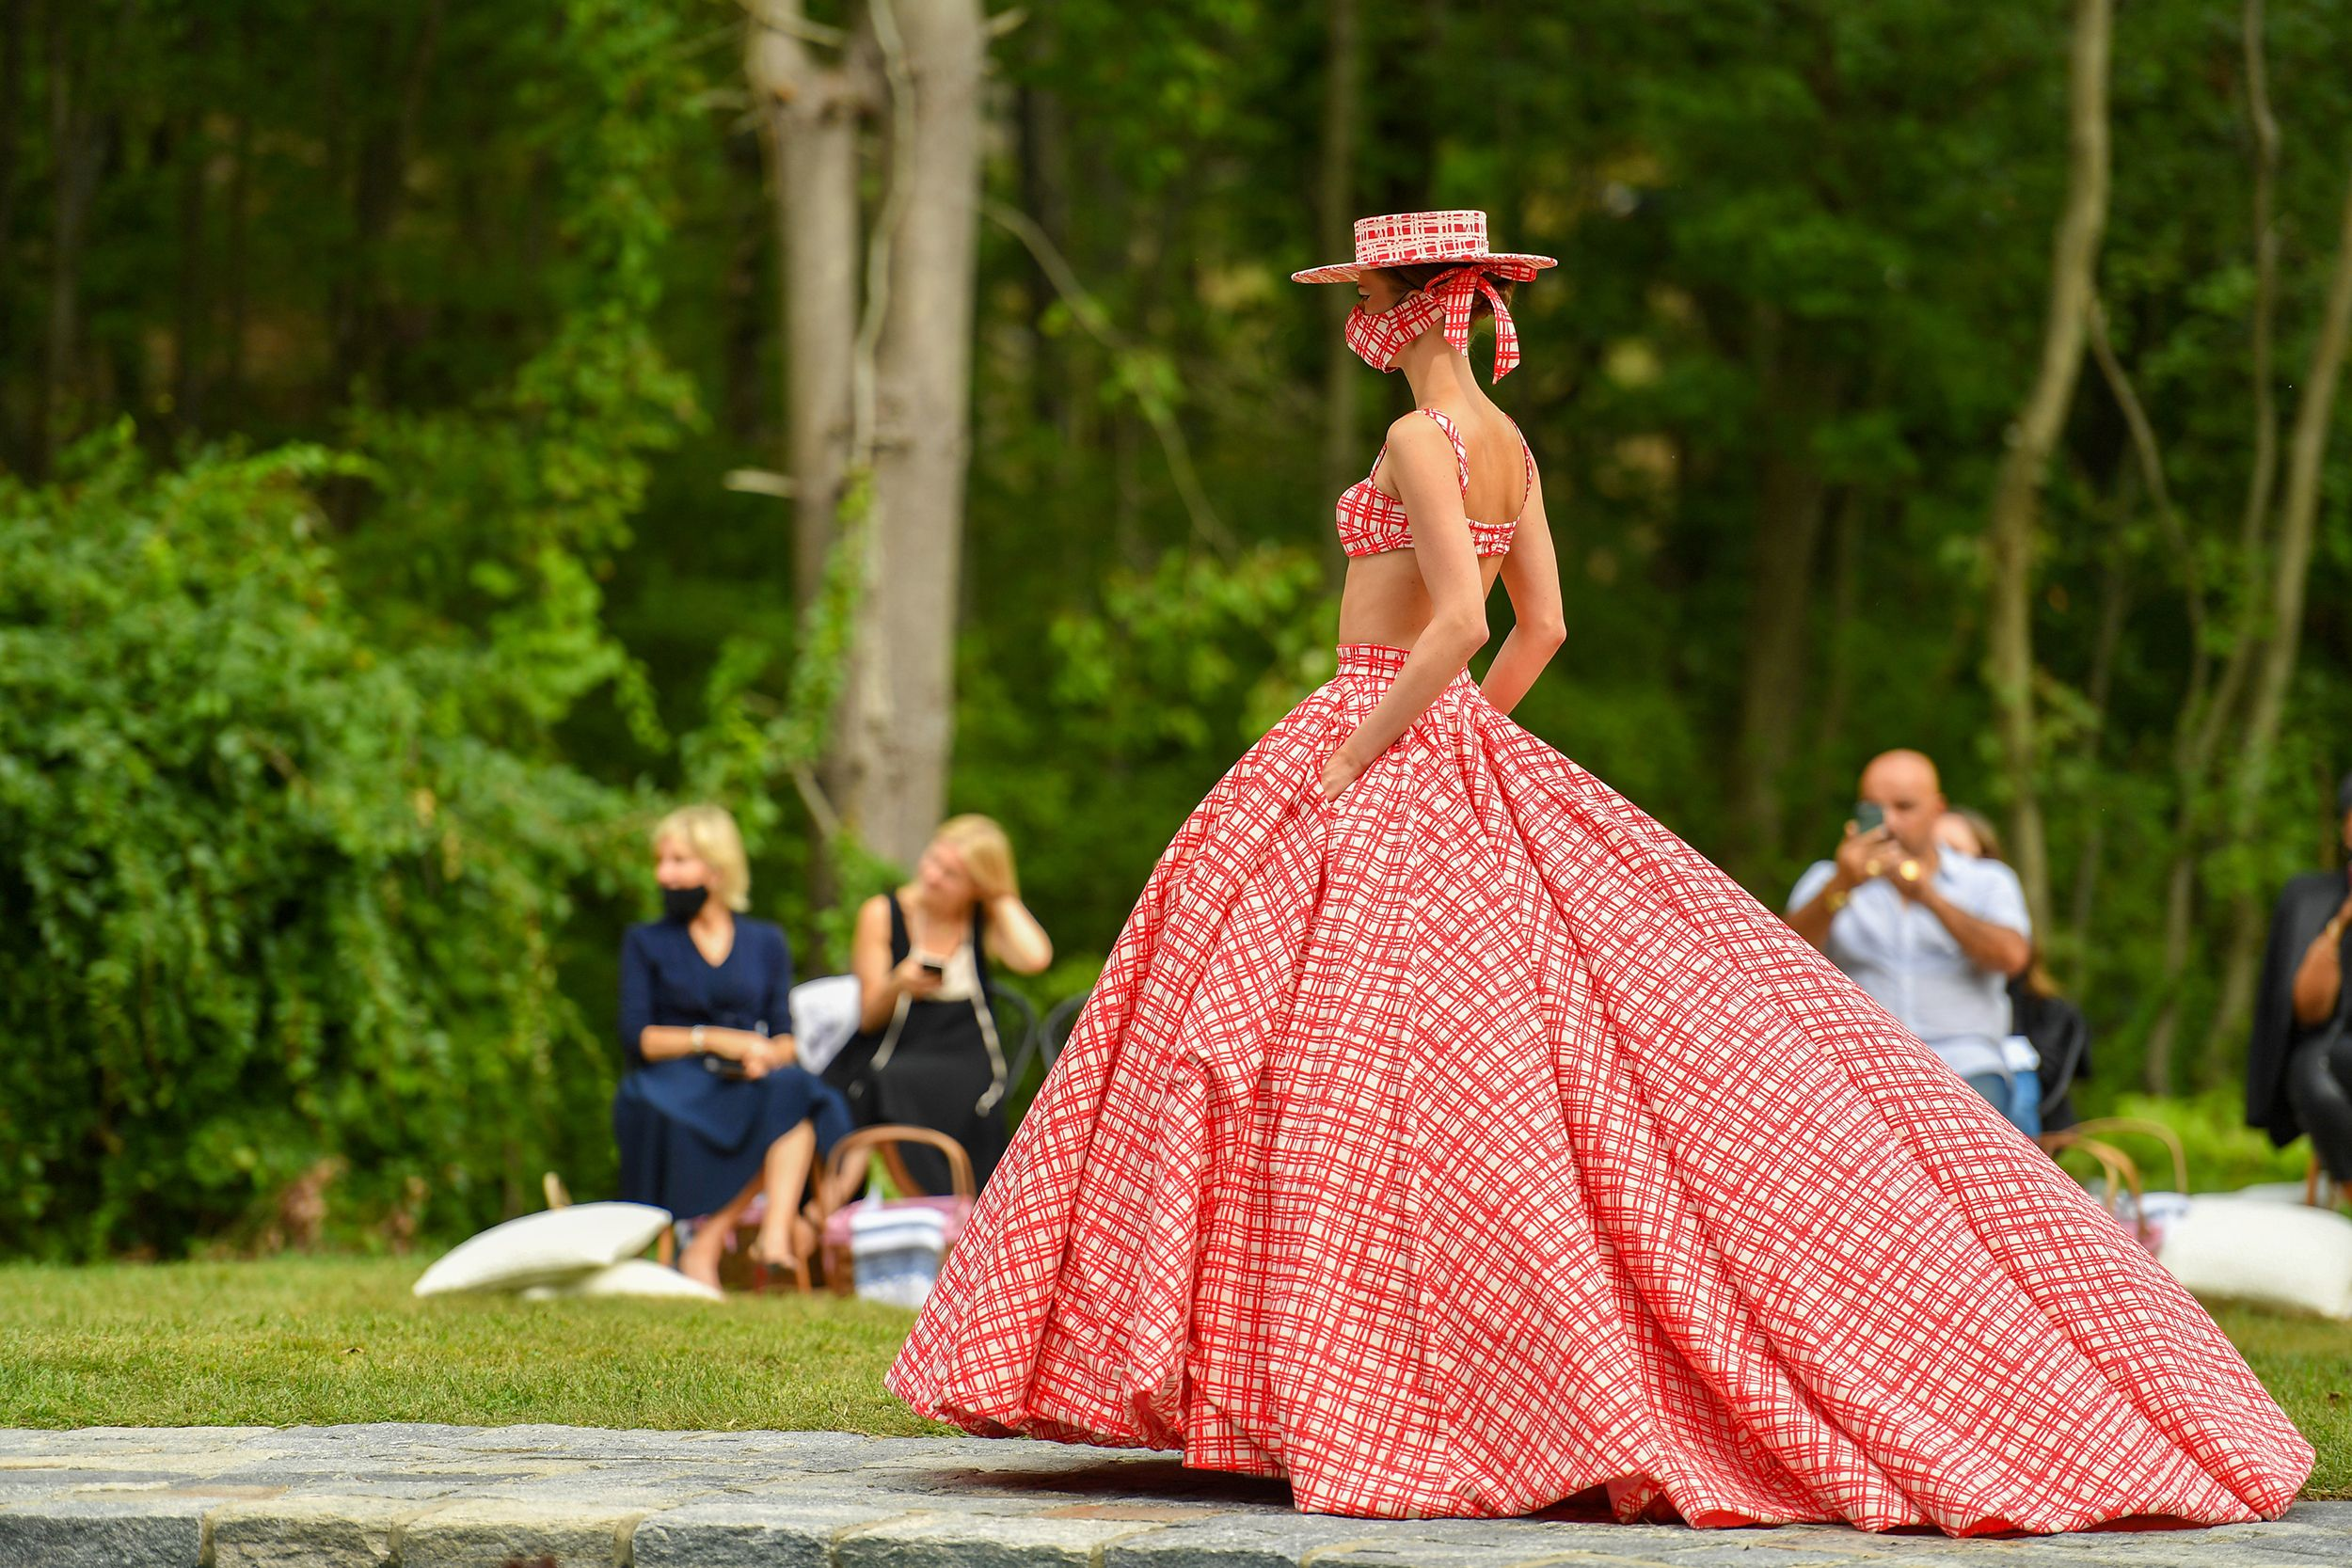 westport, connecticut   september 17 a model walks the runway for the christian siriano collection 37 2020 fashion show on september 17, 2020 in westport, connecticut photo by mike coppolagetty images for christian siriano